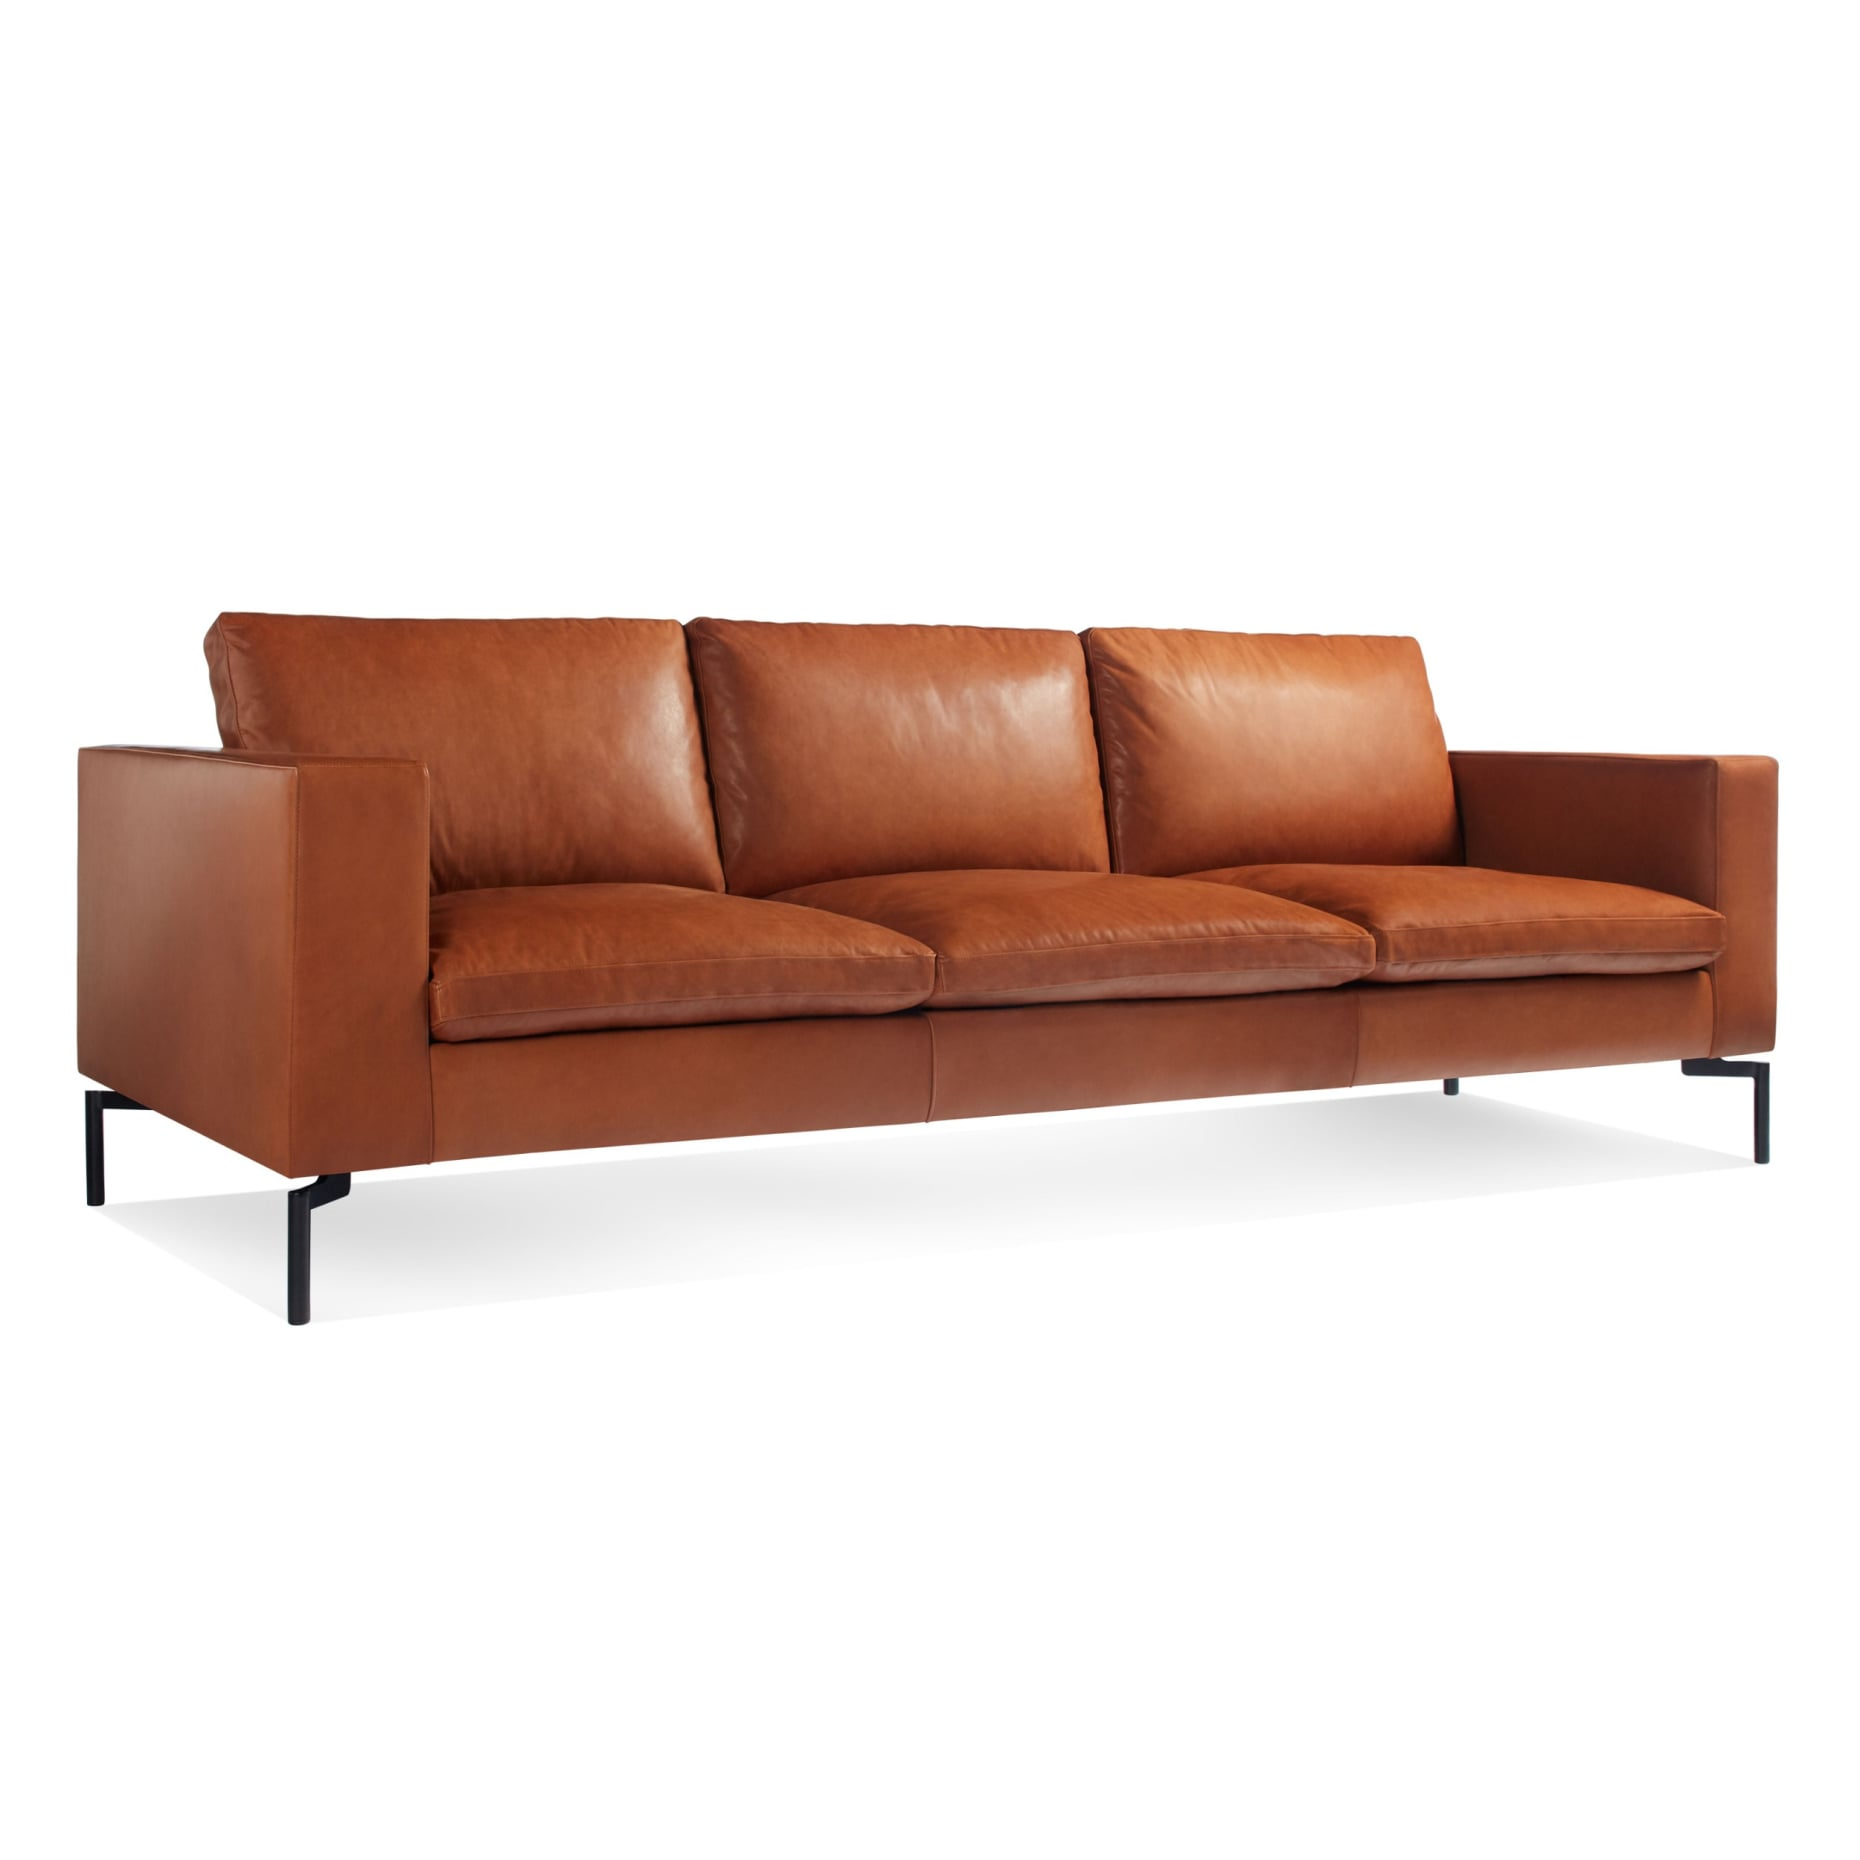 ns1 92sfbk tf 34 new standard 92 inch sofa toffee leather 1